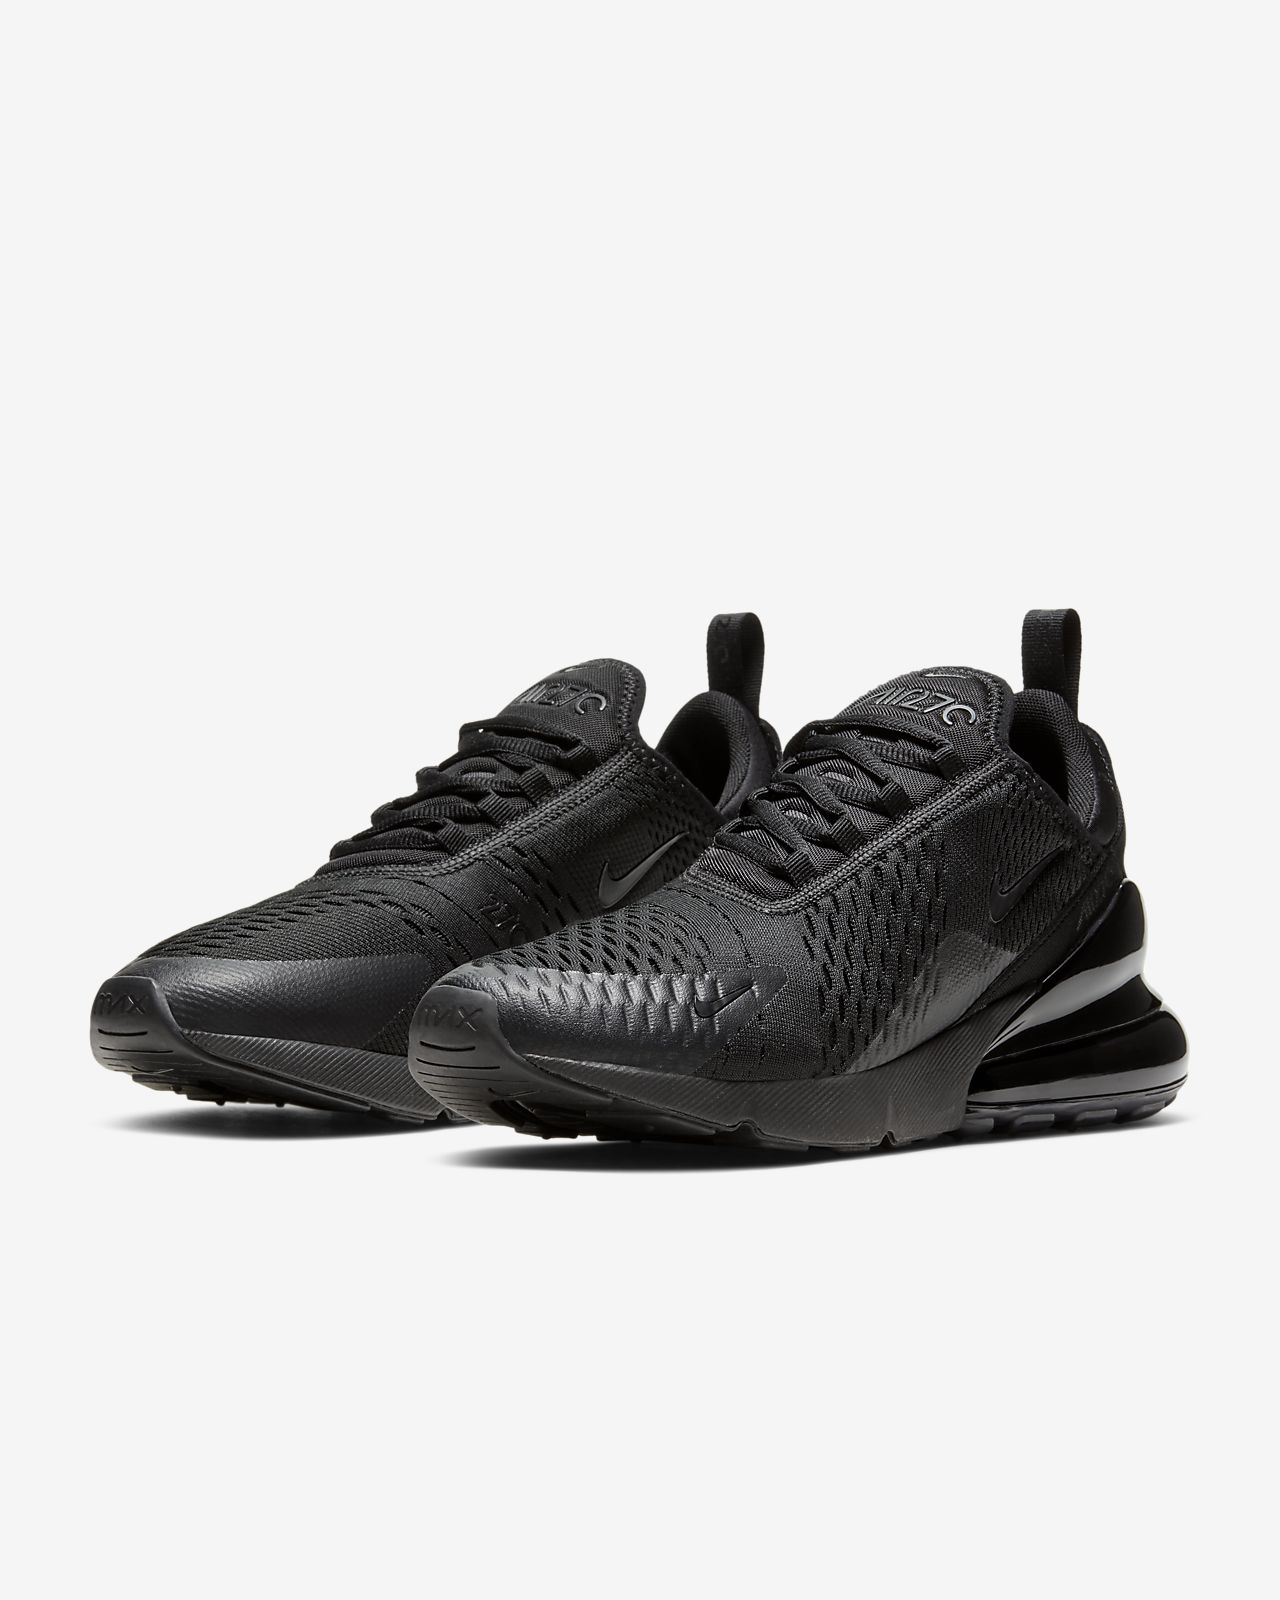 lowest price 5802c 66e23 ... Nike Air Max 270 Men s Shoe